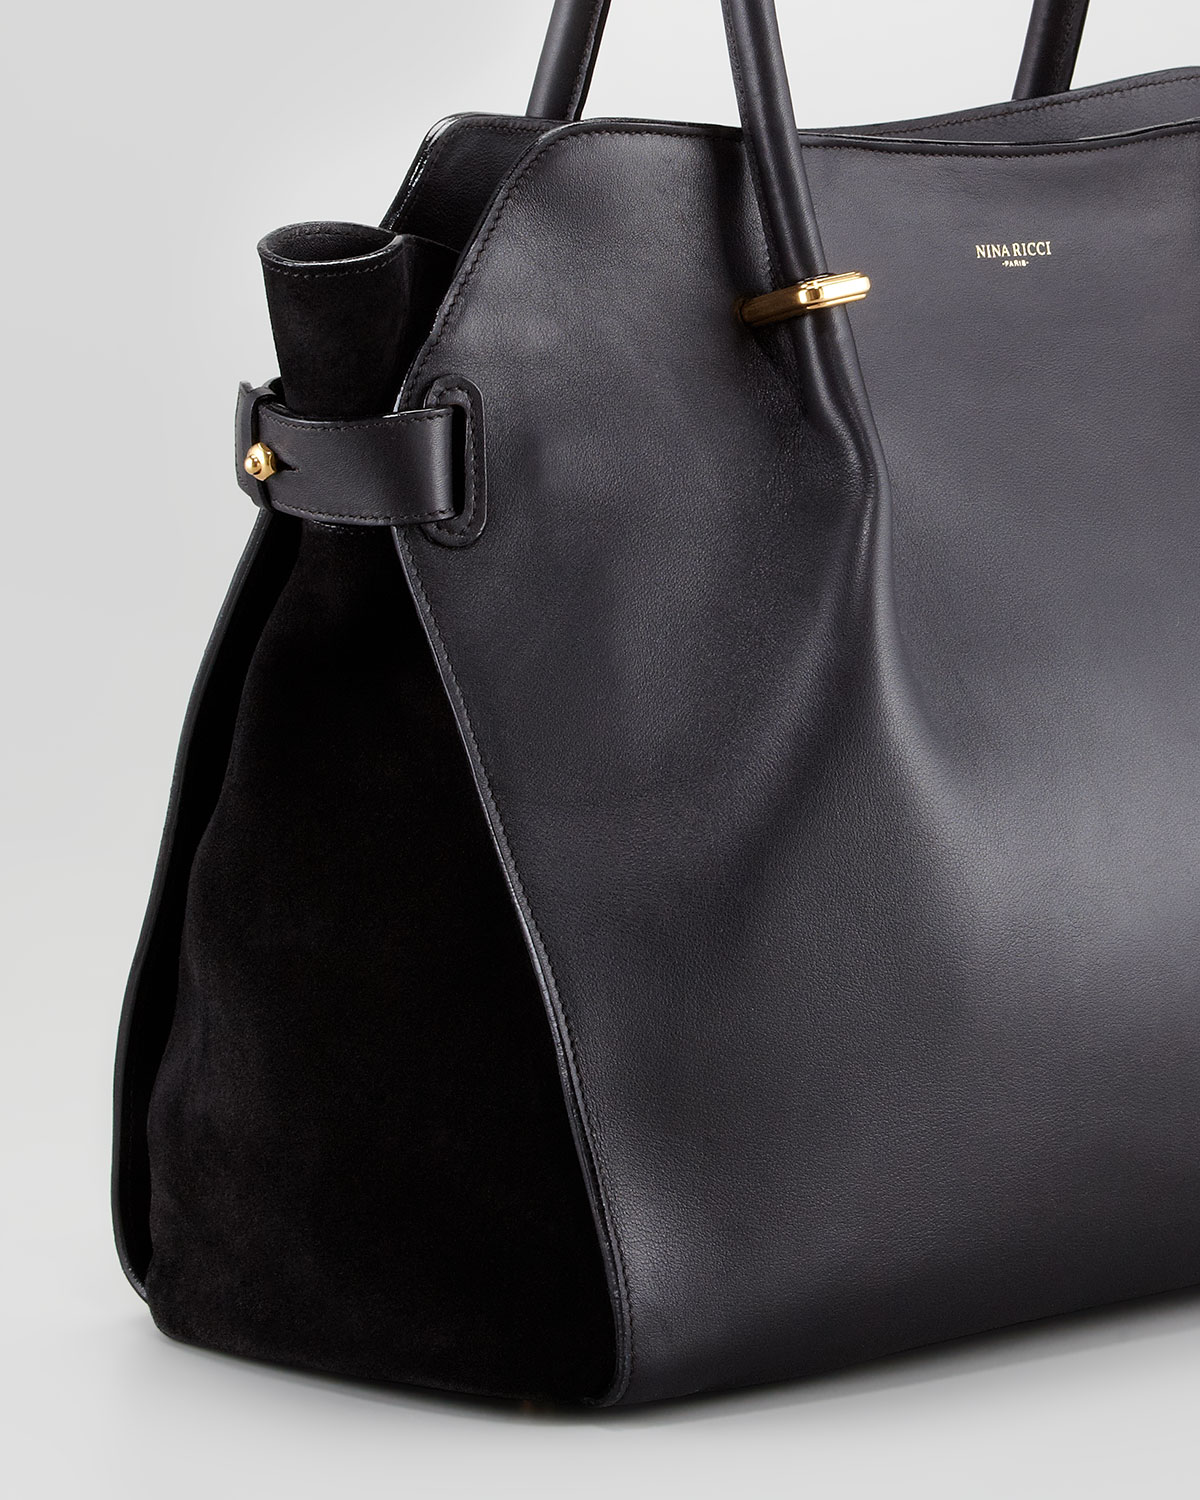 Lyst Nina Ricci Marche Large Leather Tote Bag Black In